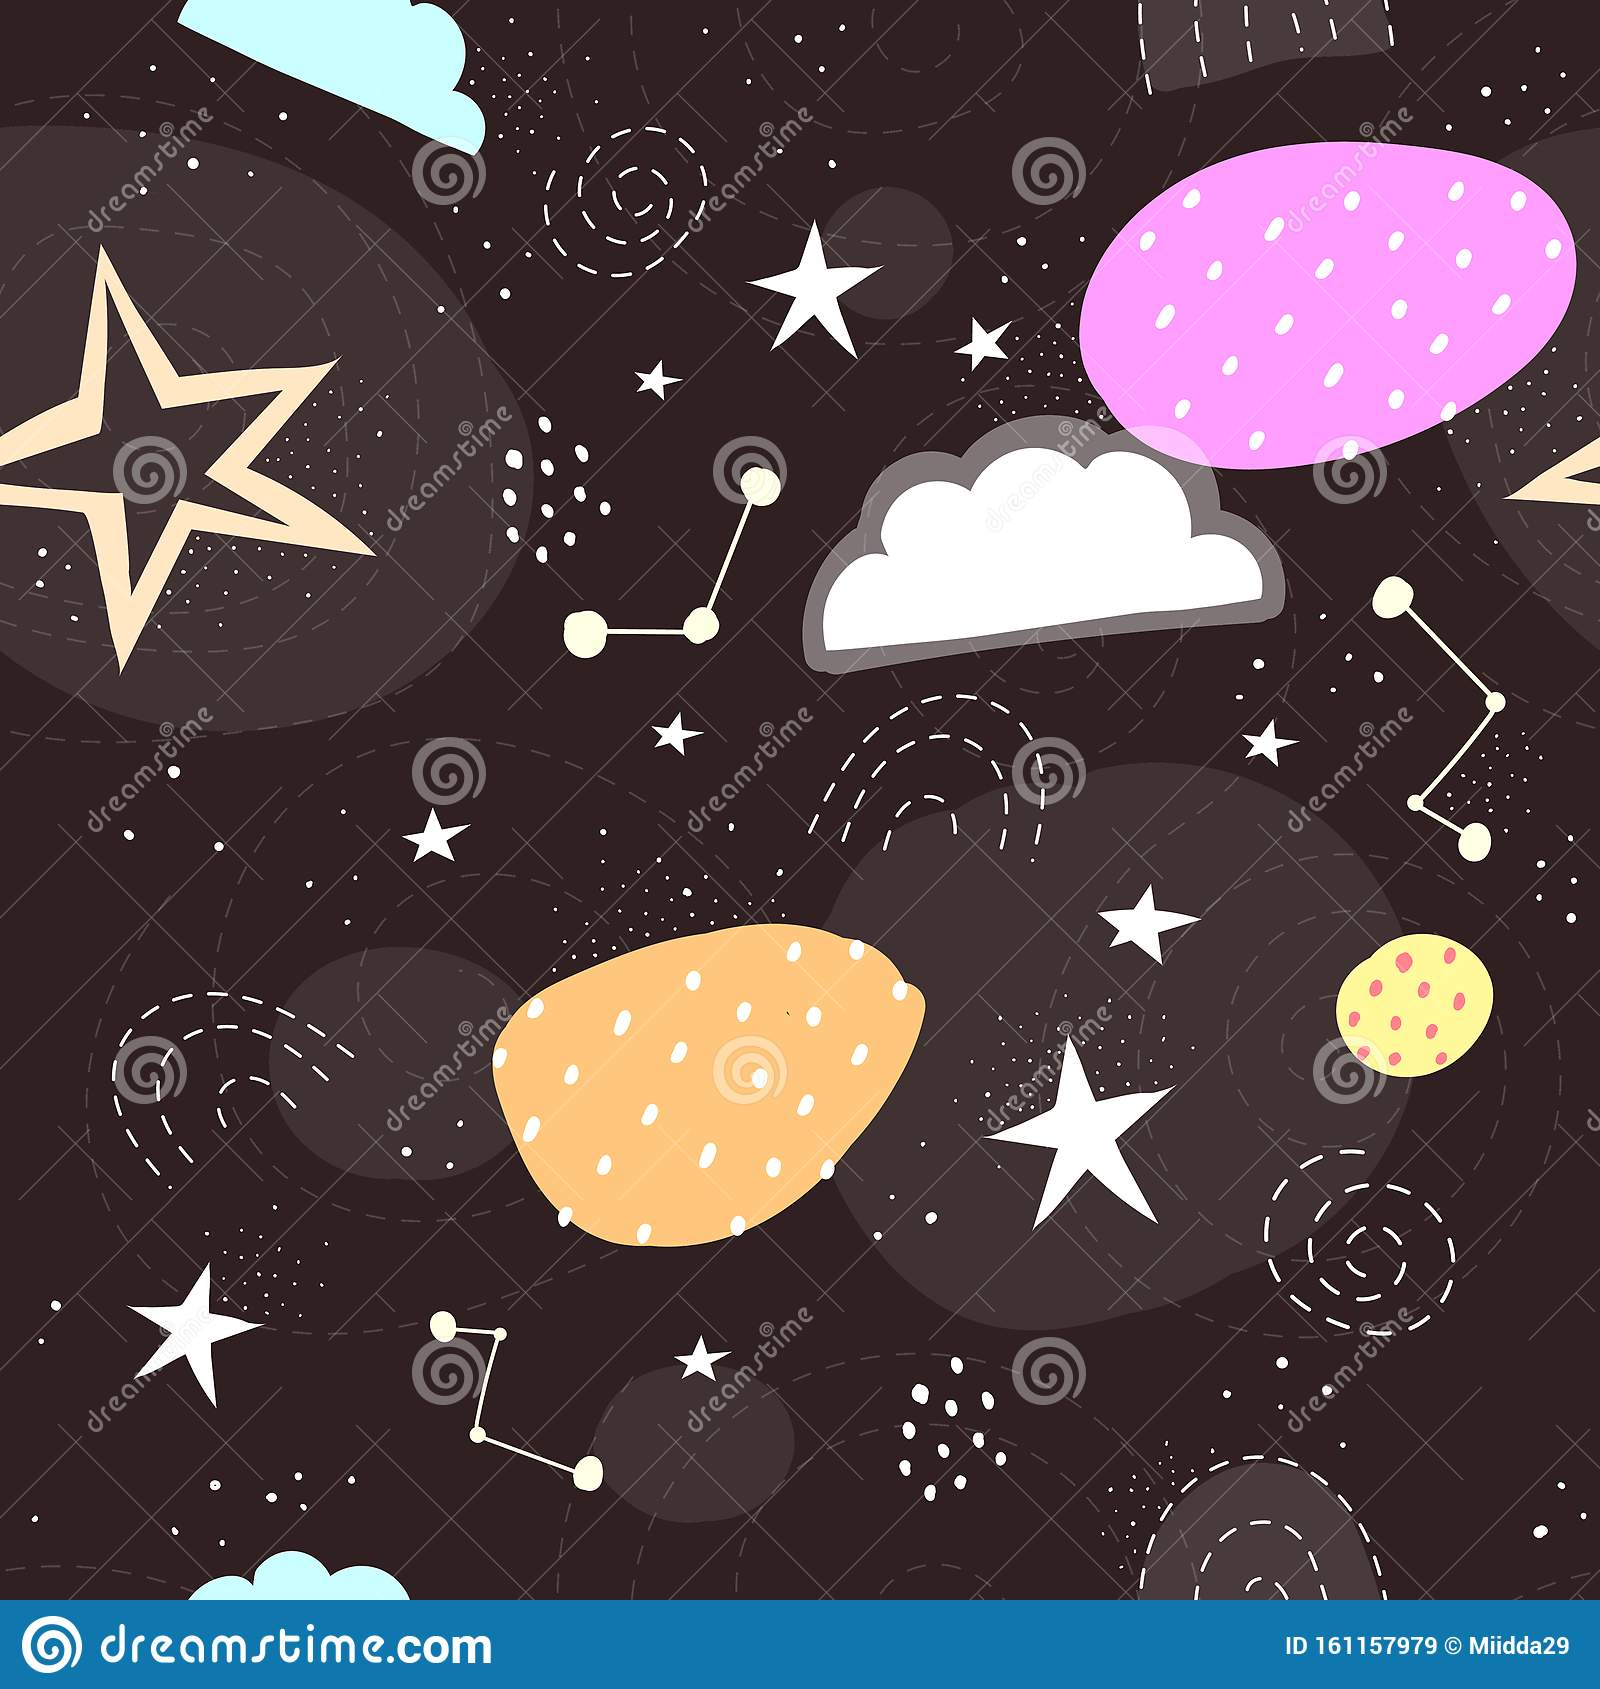 Seamless Space Pattern With Stars Clouds Rainbow Decor Elements